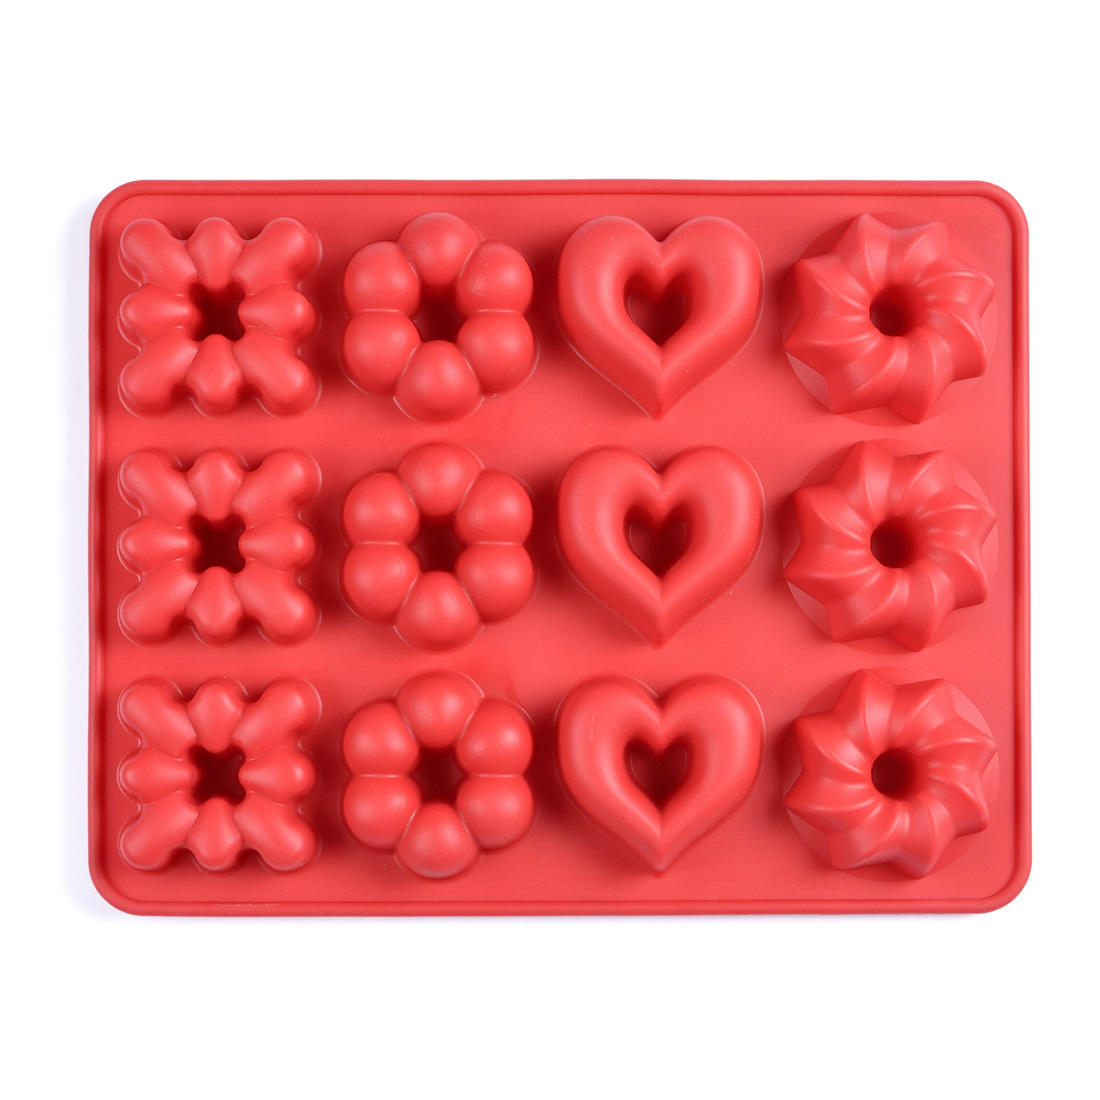 Best Silicone baking mold Dongguan for sale for kids-2